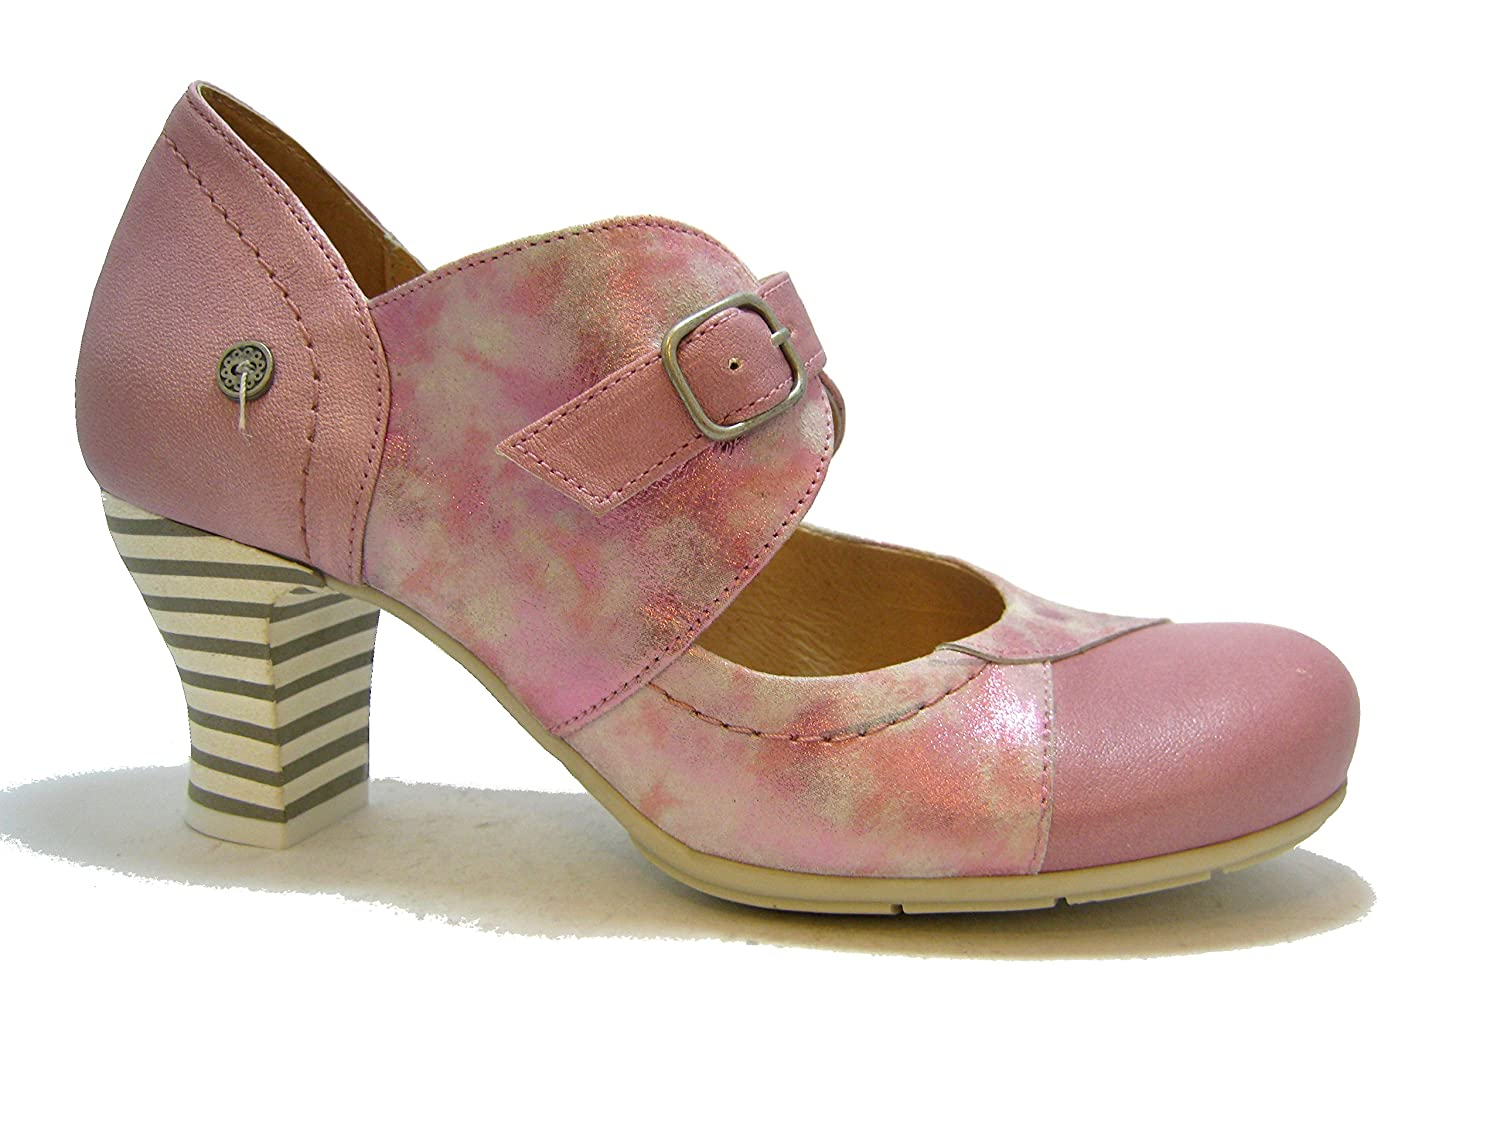 Gold Button 9728 Pumps, Damen, Leder, Rosa und Pink Metallic